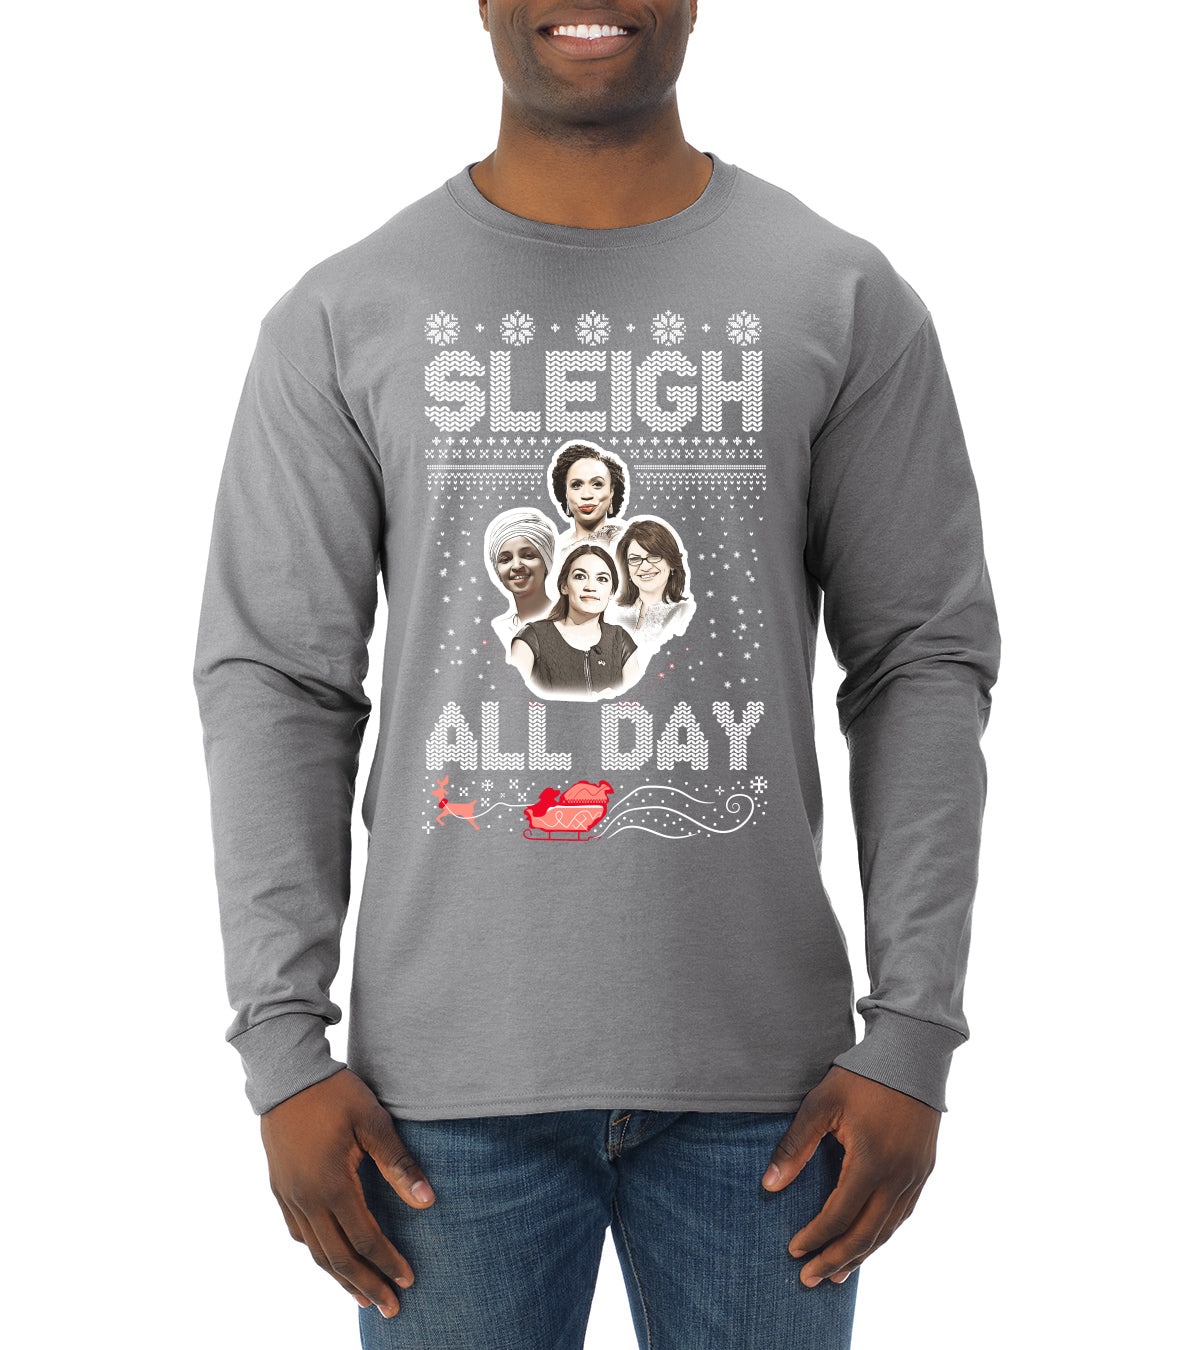 AOC The Squad Congresswomen Sleigh All Day Xmas Ugly Christmas Sweater Mens Long Sleeve Shirt